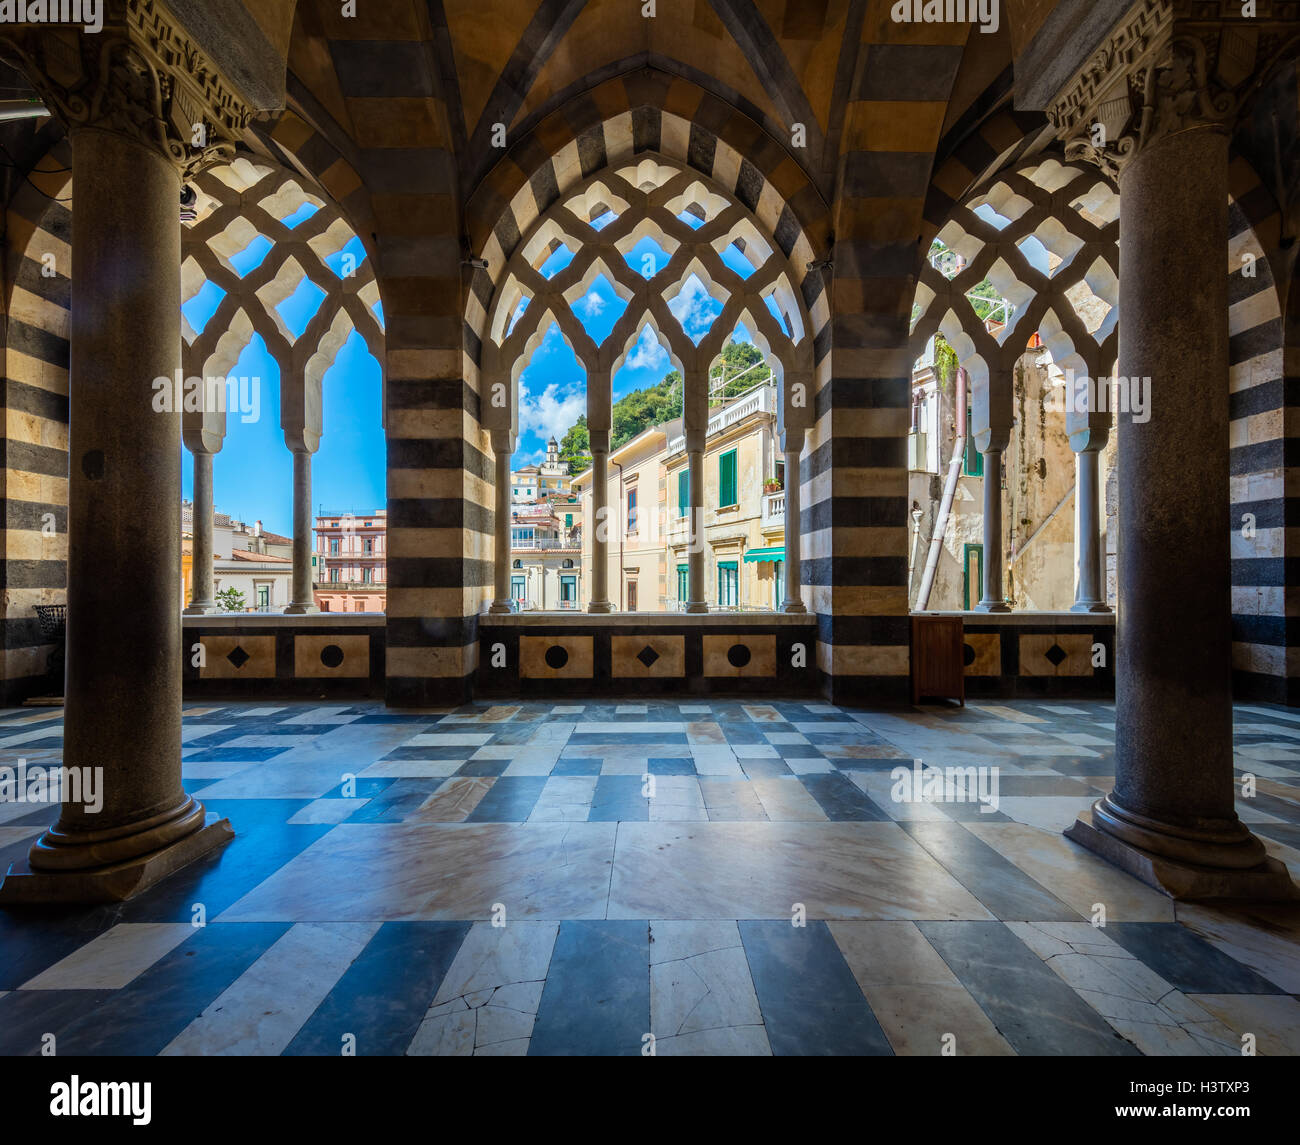 Amalfi Cathedral is a 9th-century Roman Catholic cathedral in the Piazza del Duomo, Amalfi, Italy. - Stock Image